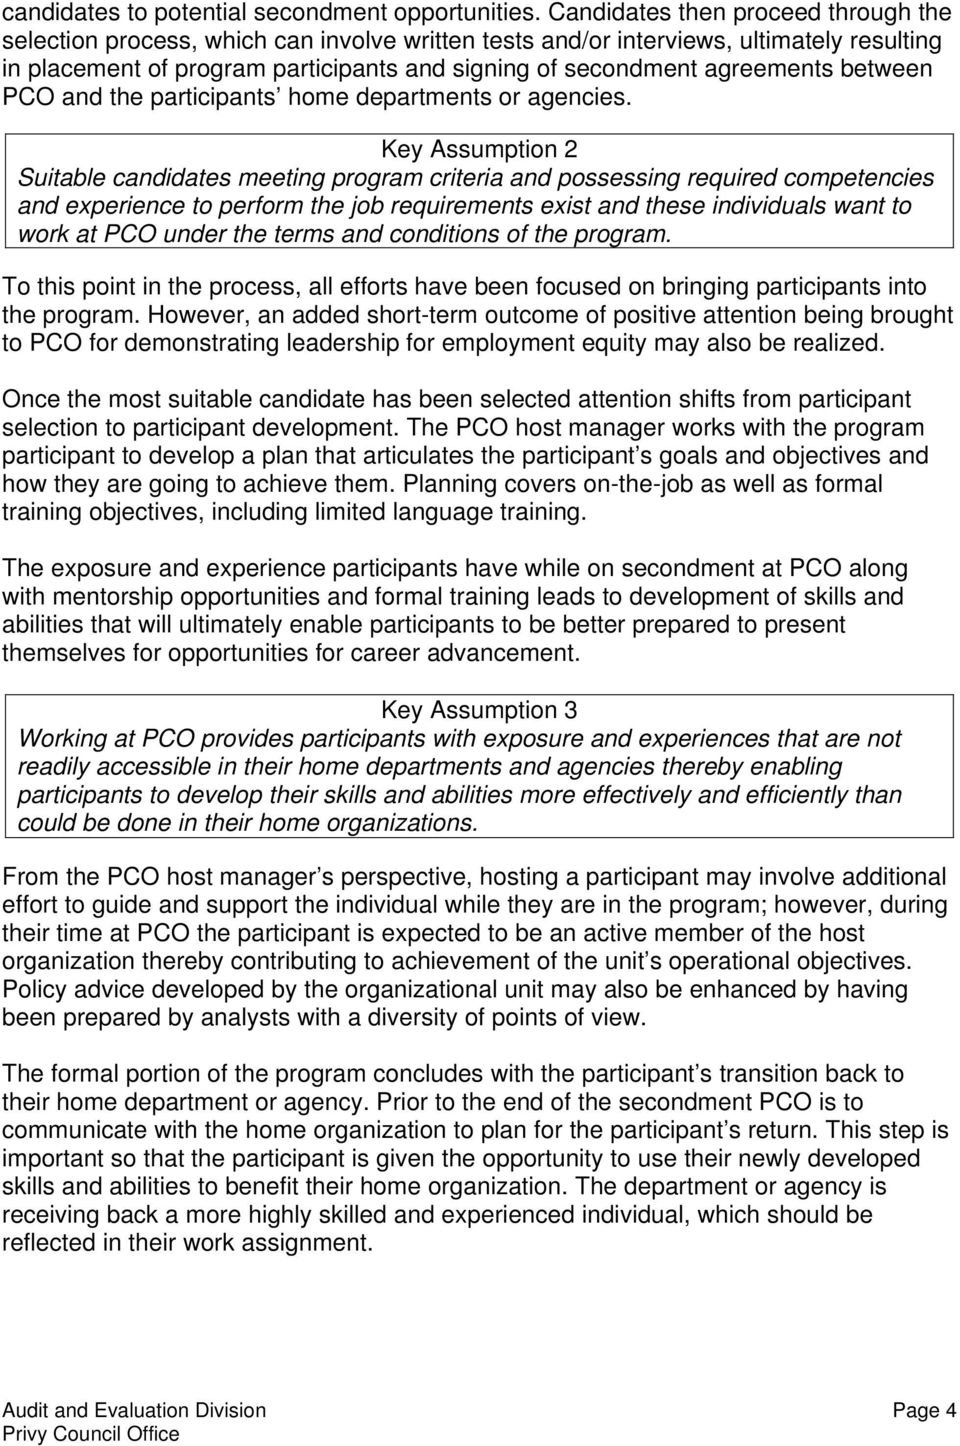 agreements between PCO and the participants home departments or agencies.